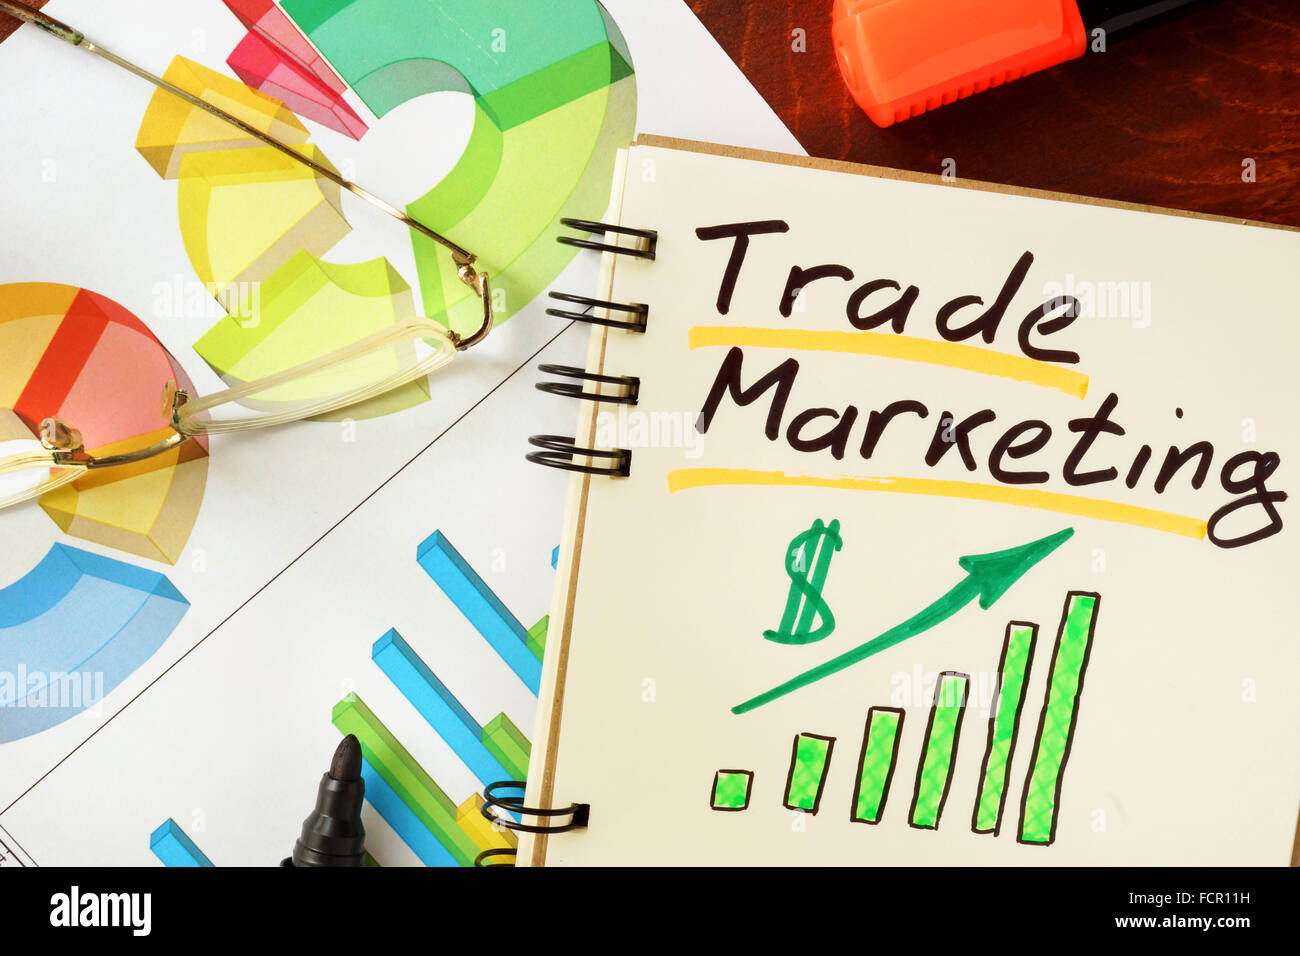 What is trade market